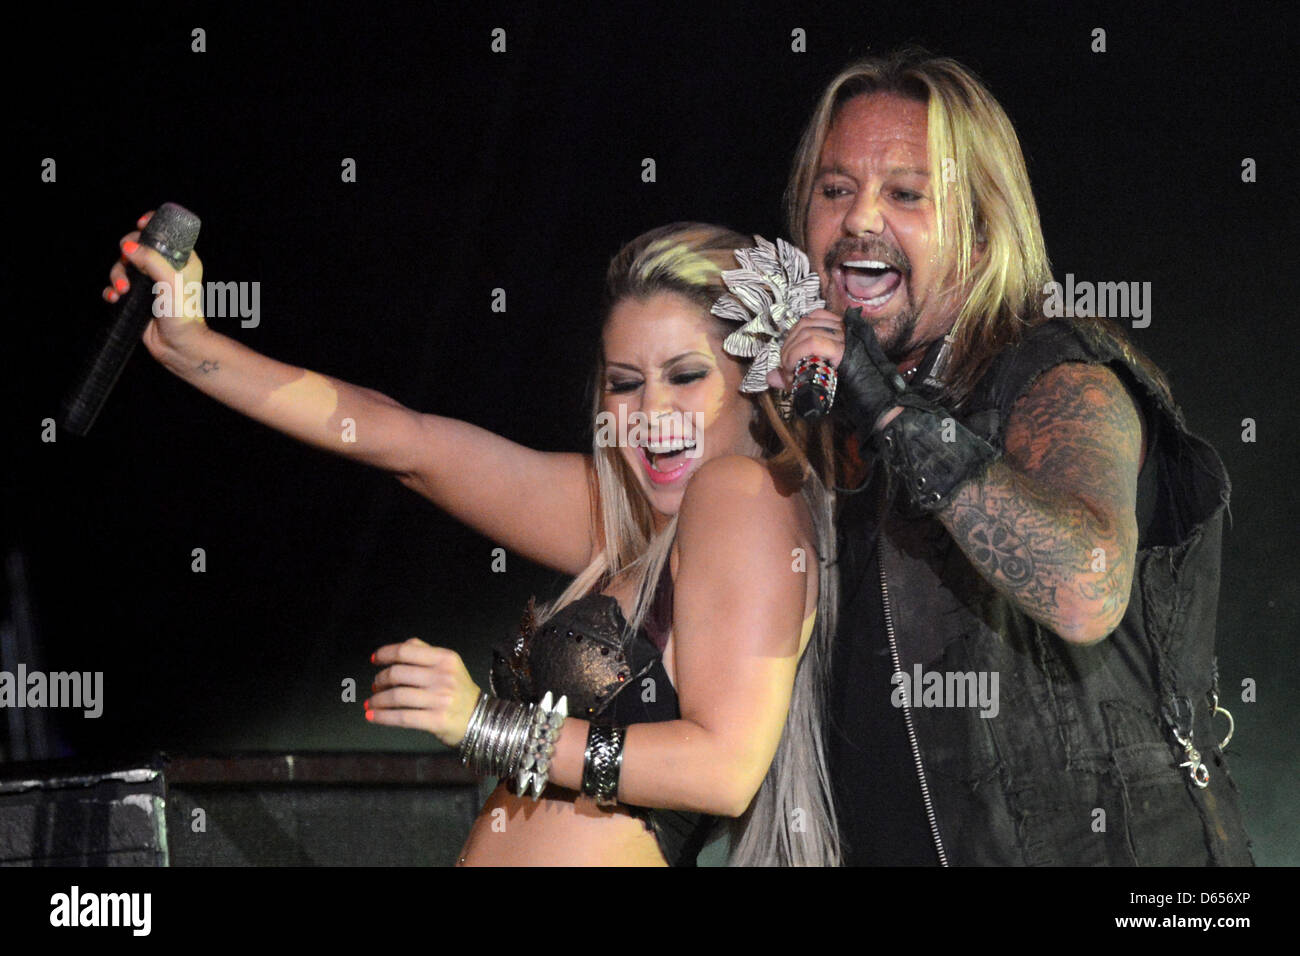 Frontman Of Heavy Metal Band Motley Crue Vince Neil And A Stock Photo Alamy